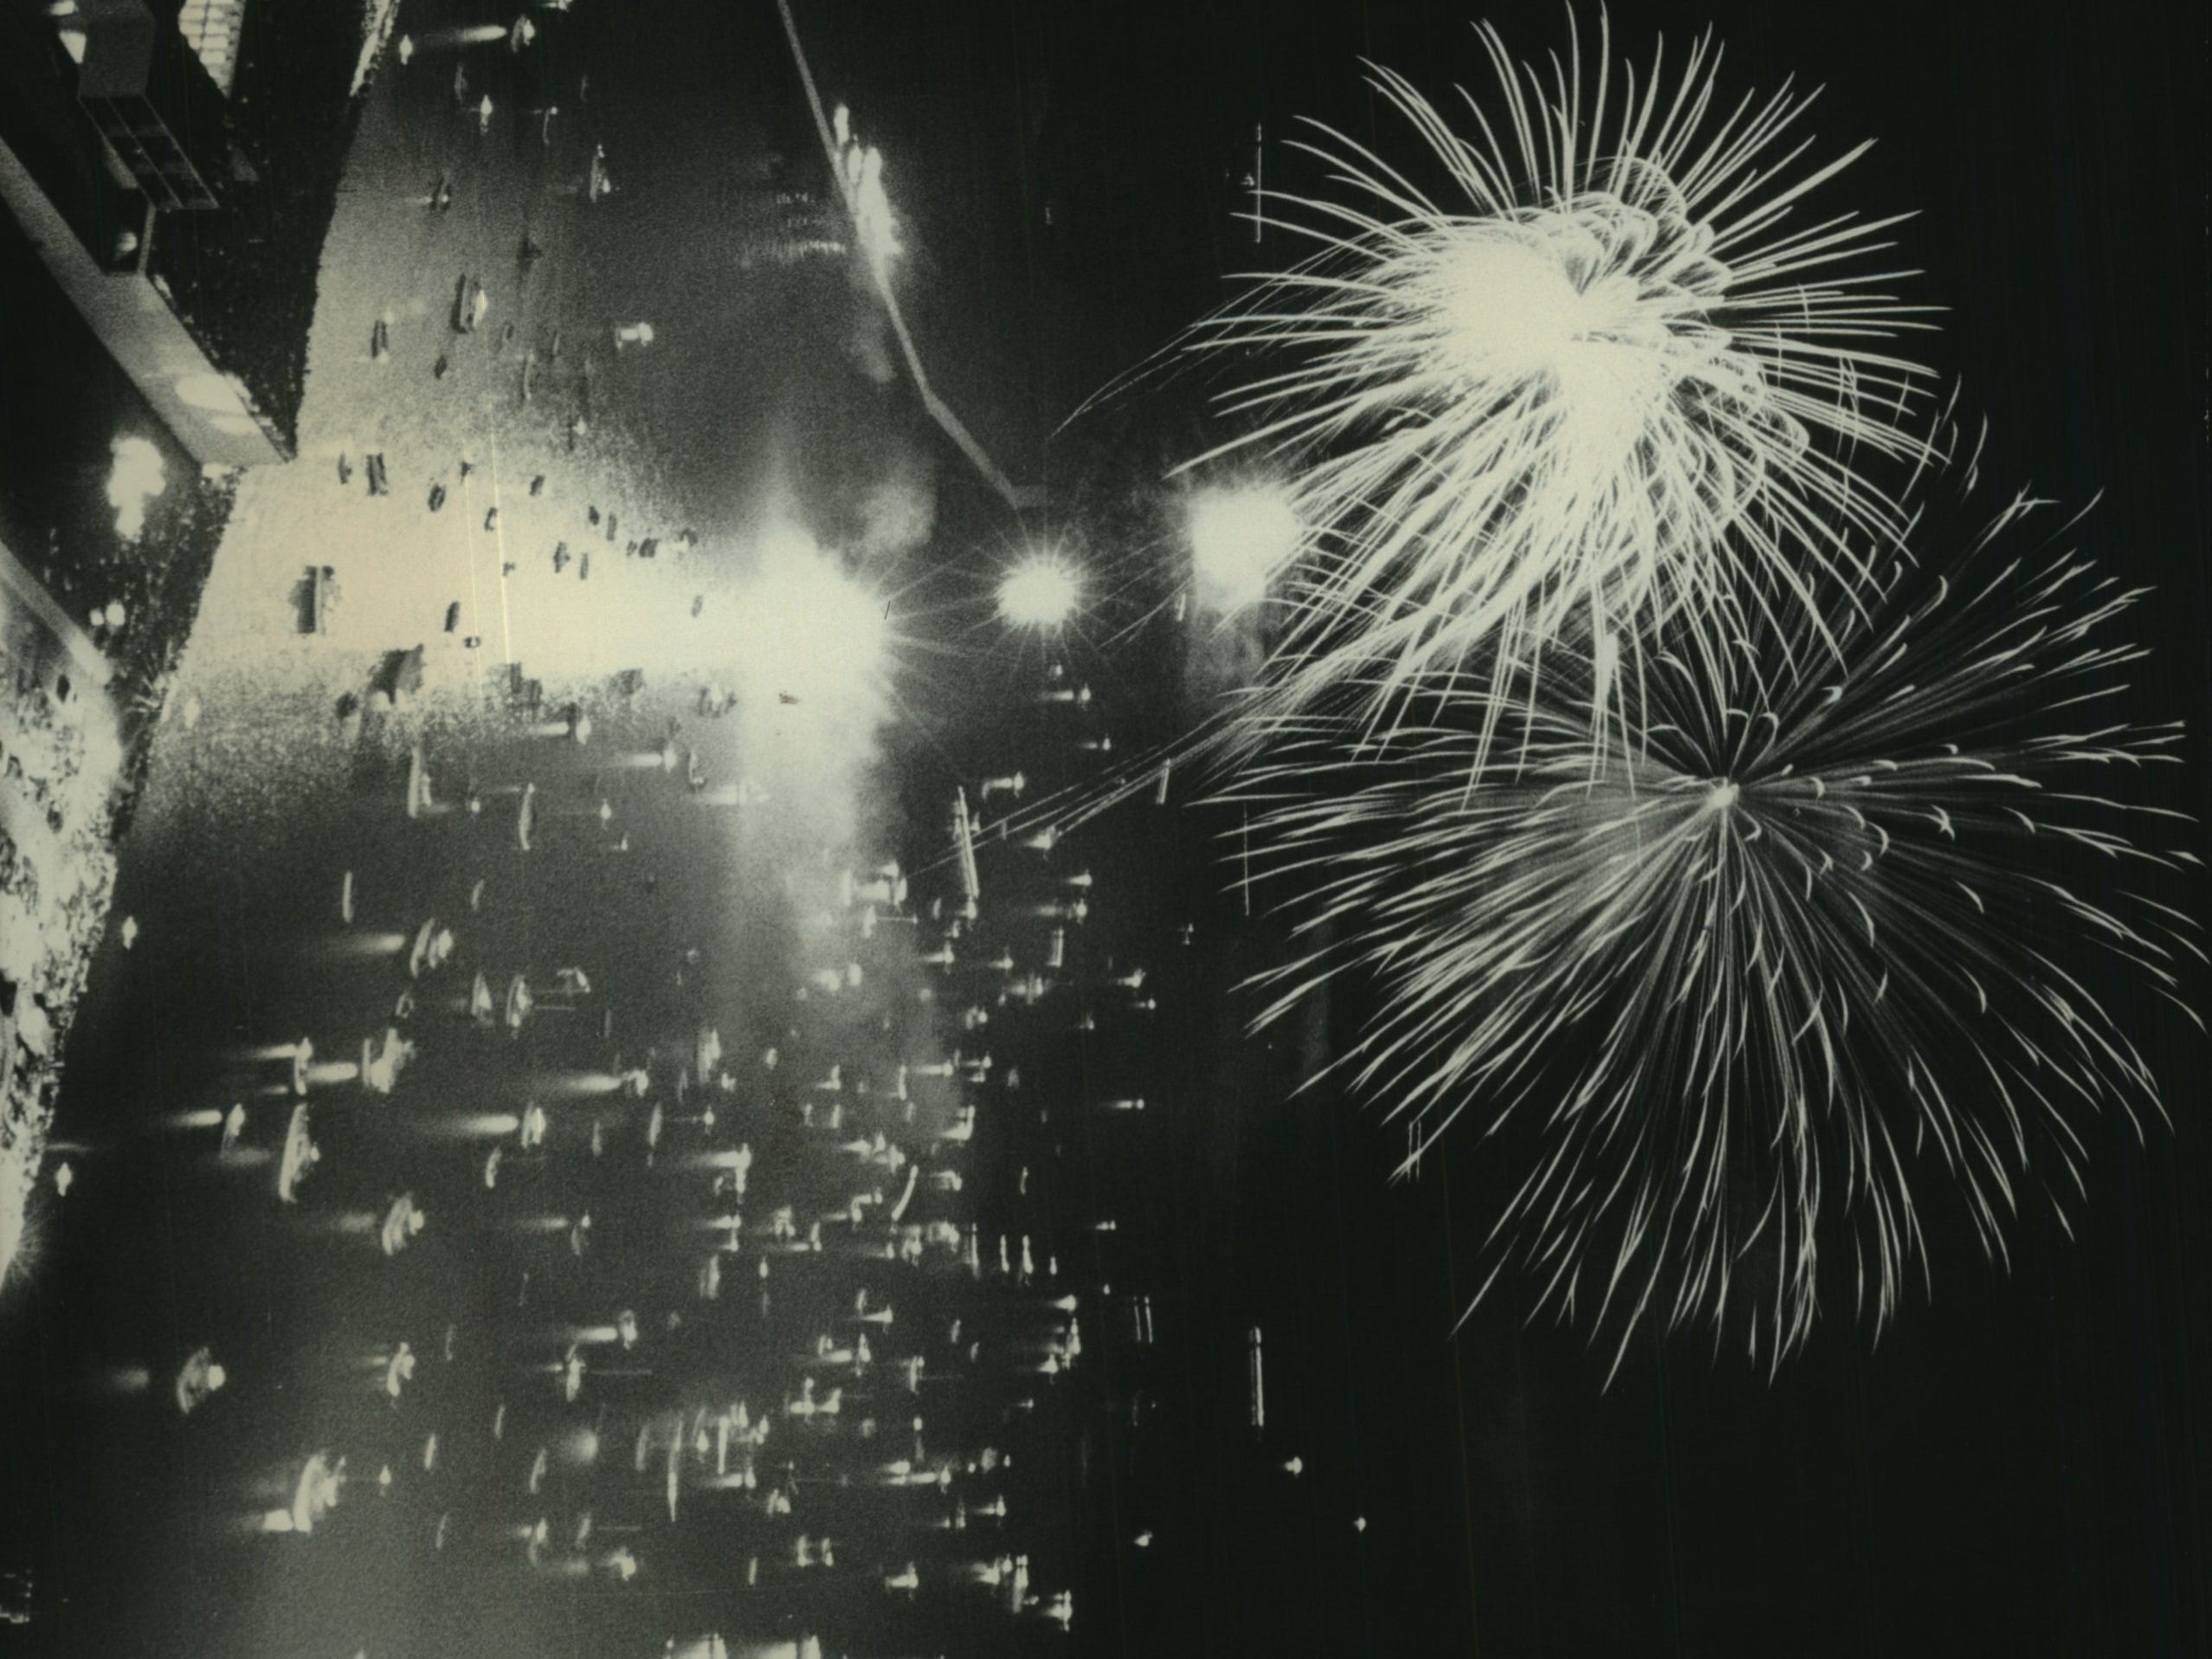 Fireworks explode over Milwaukee's lakefront during a bicentennial display sponsored by Jos. Schlitz Brewing Co. on July 4, 1976. The photo looks northeast from the 41st floor of what is now the U.S. Bank Building. This photo was published in the July 6, 1976, Milwaukee Journal.